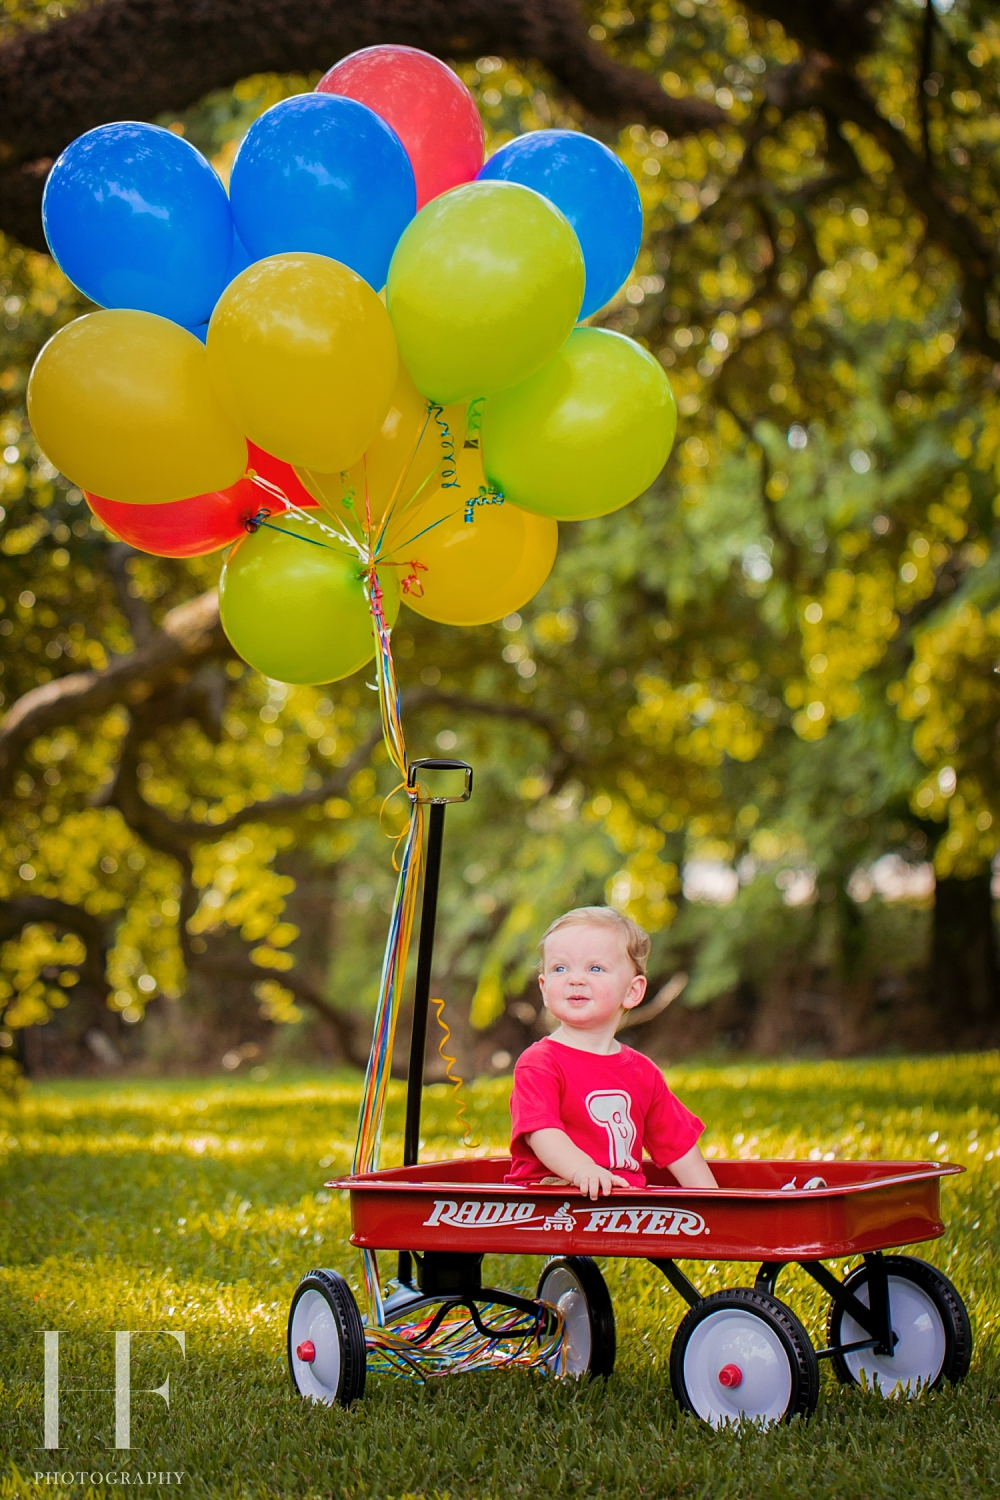 Hf photography, downtown, Lake charles, Louisiana, Cake smash, first birthday, Lake charels photographer, Child photographer, family photographer, oak tree, red wagon photos, one year old, let them eat cake, quinn,